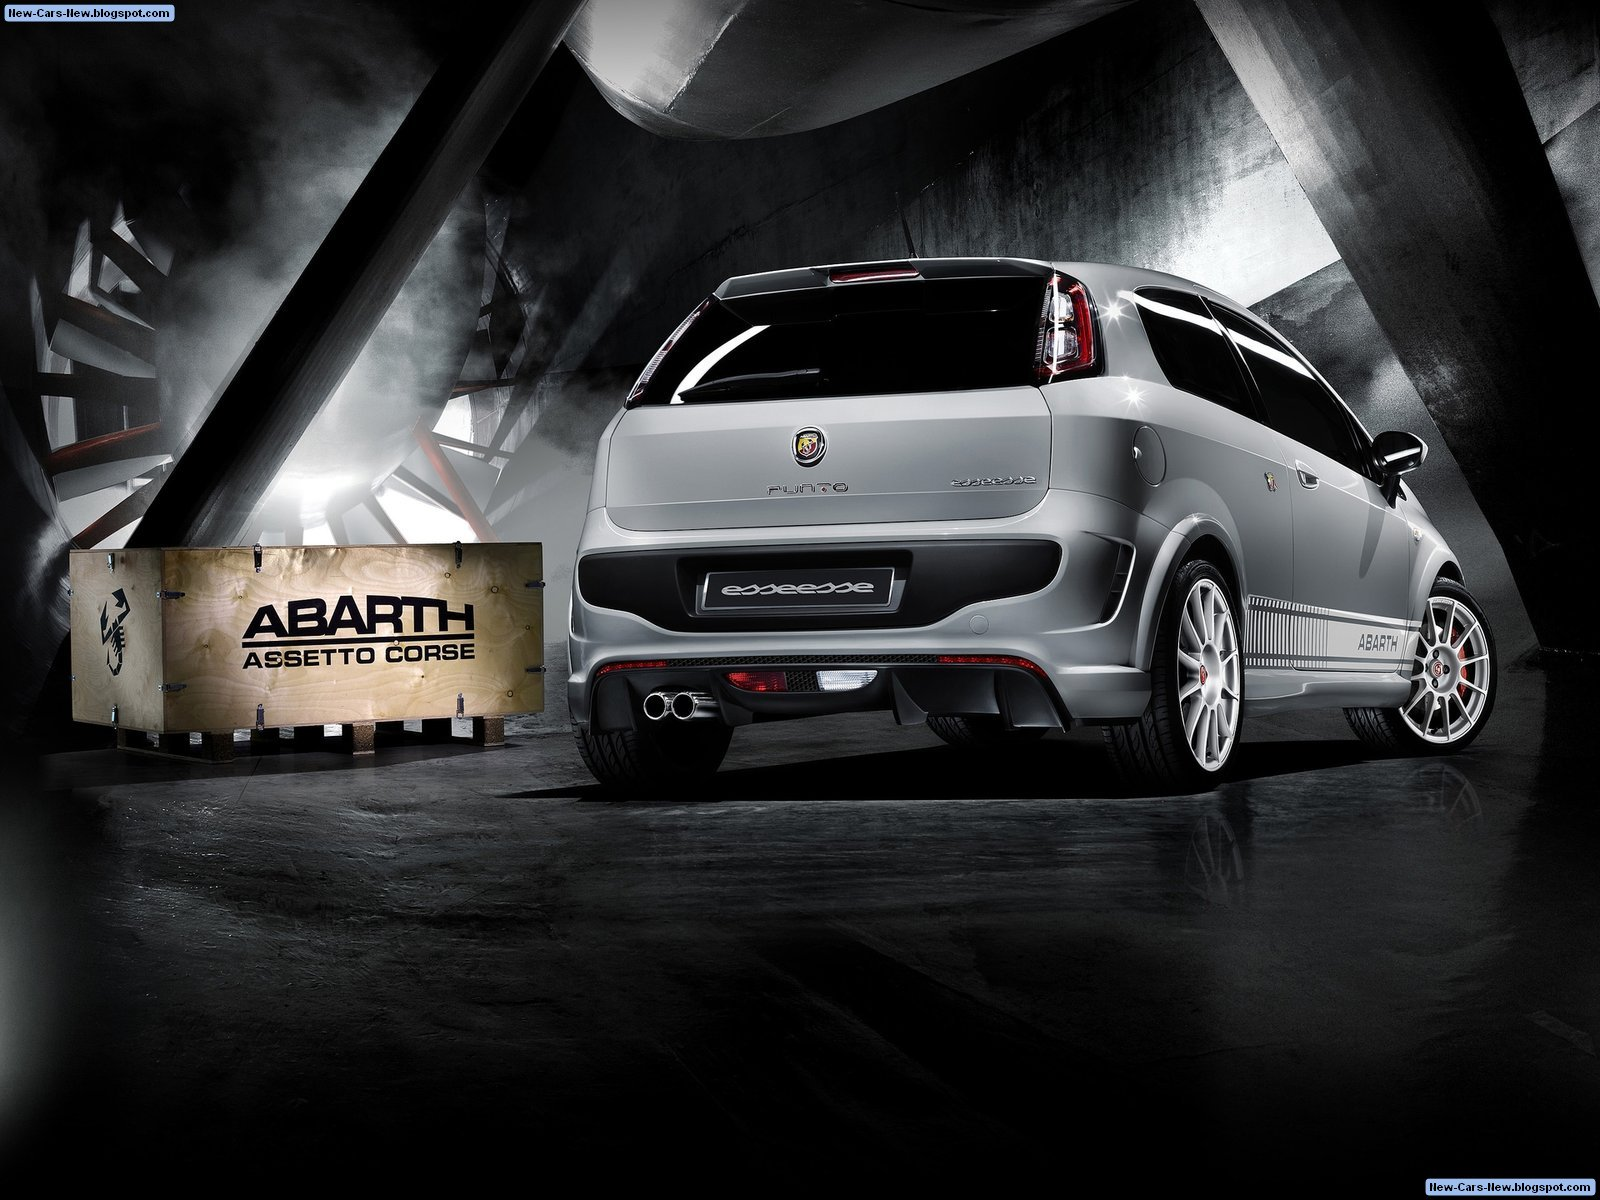 fiat punto evo abarth esseesse 2011. Black Bedroom Furniture Sets. Home Design Ideas